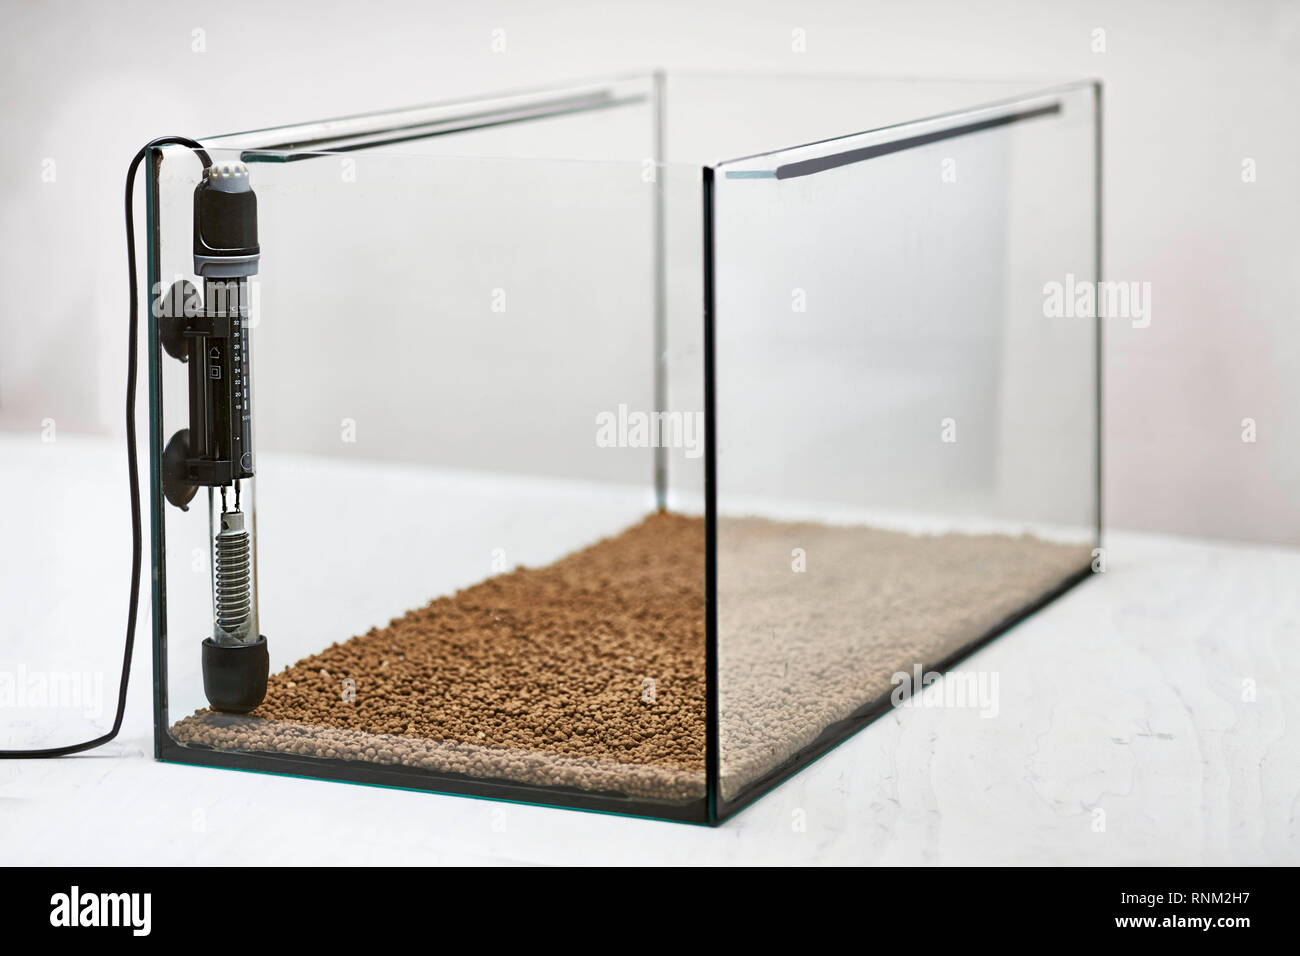 Setting up a fish tank: Safety heater-stat in an empty aquarium - Stock Image